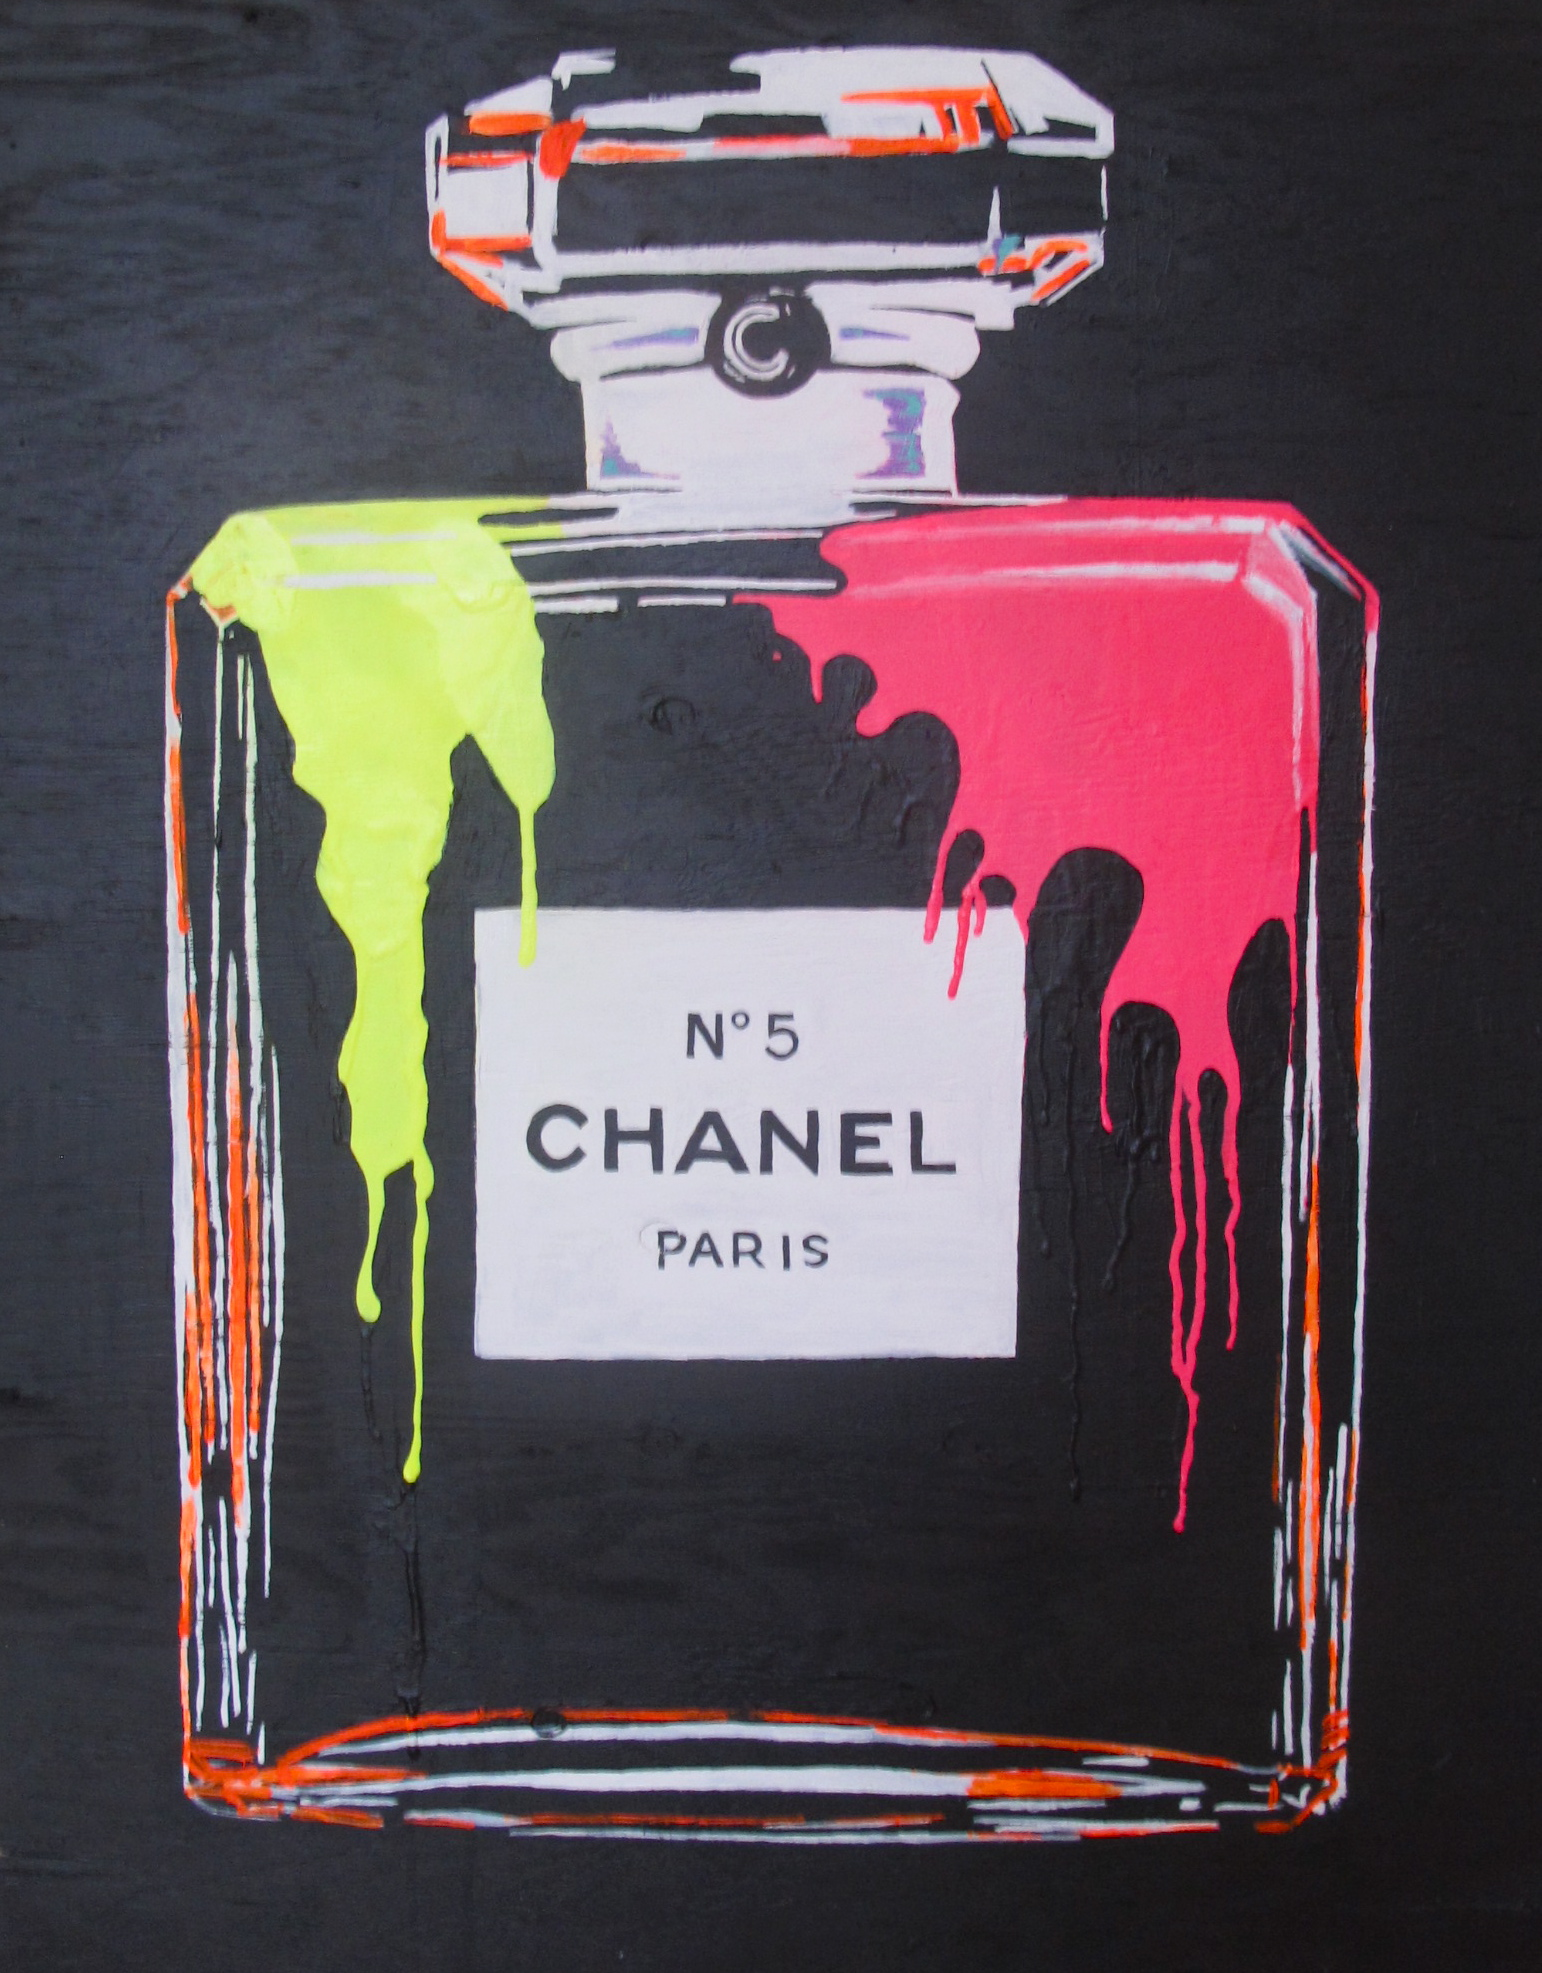 Chanel No. 5,by Louis-Nicolas Darbon